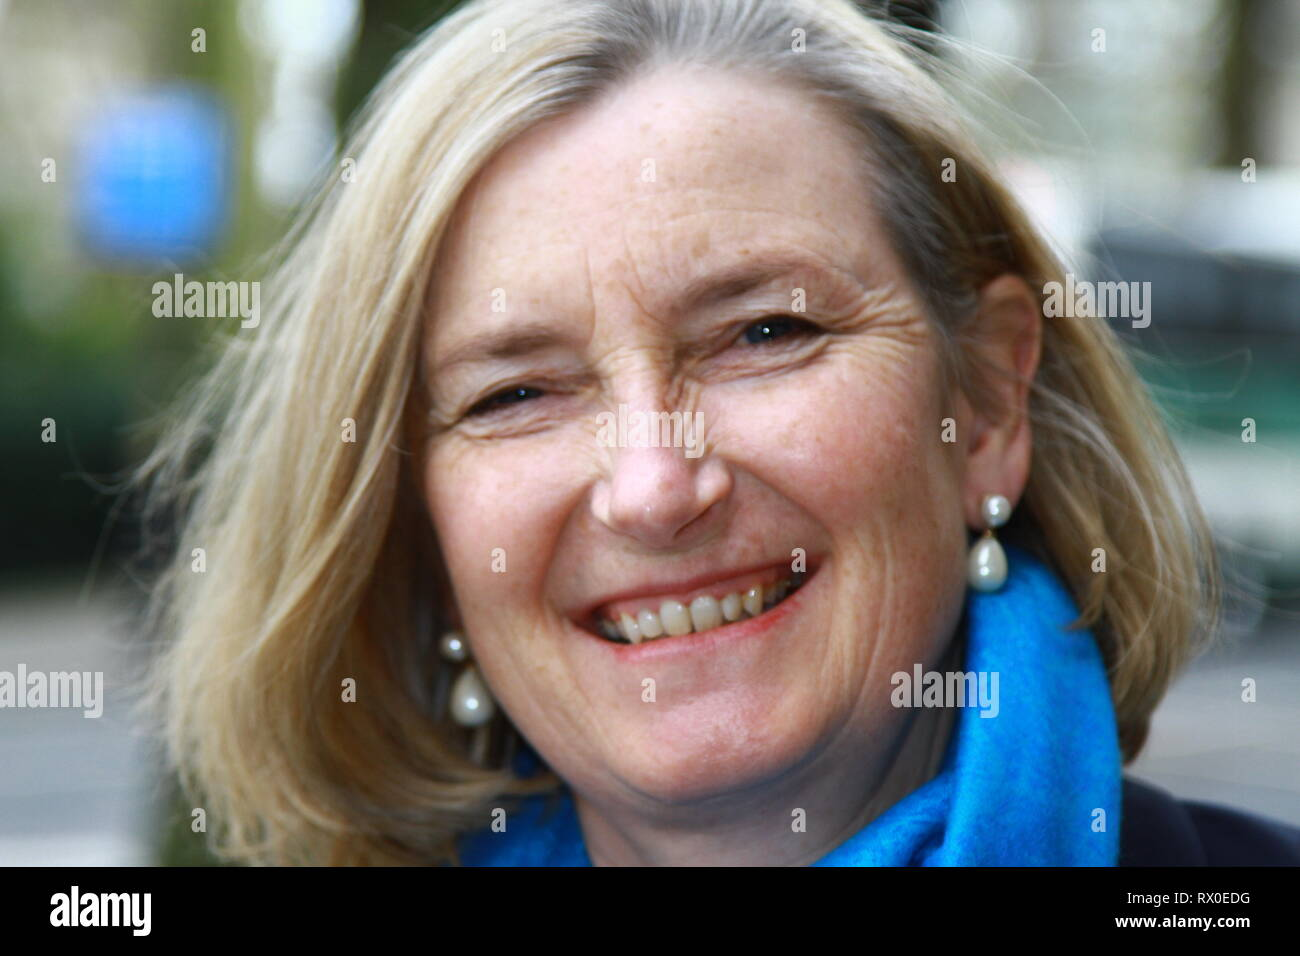 Sarah Wollaston MP for Totnes pictured in Westminster on 7th March 2019. Sarah Wollaston resigned from the Conservative party union to join the Independent Group. Chair of Liaison Committee and Chair of Health Select Committee. DR. SARAH WOLLASTON. British politicians. UK POLITICS. MPS. GENERAL PRACTITIONERS. GPS. GP DOCTORS. DR. SARAH WOLLASTON IS AN EXPRIENCED MEDICAL PRACTITIONER. DOCTORS. NHS. NATIONAL HEALTH SERVICE DOCTORS. NHS MEDICAL STAFF. Change UK. Change UK Political party. - Stock Image